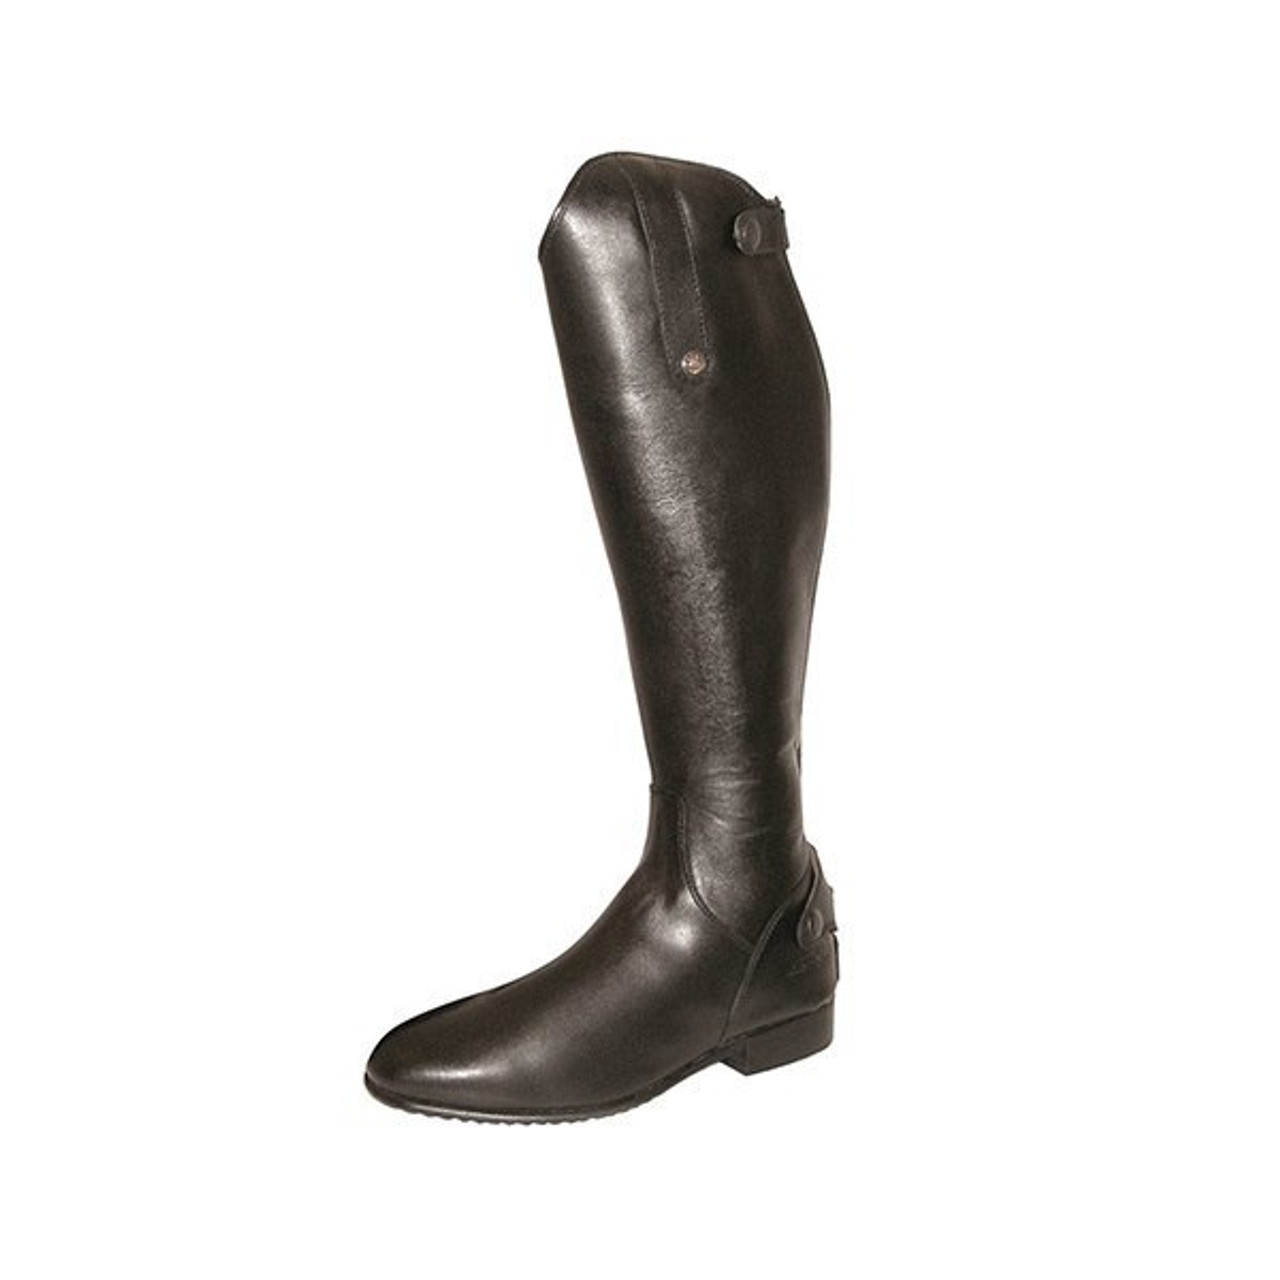 9ff111dc1ee4 Mark Todd Long Leather Competition Dress Boots - Short Wide - Black - HOOVES  AND BOONIES